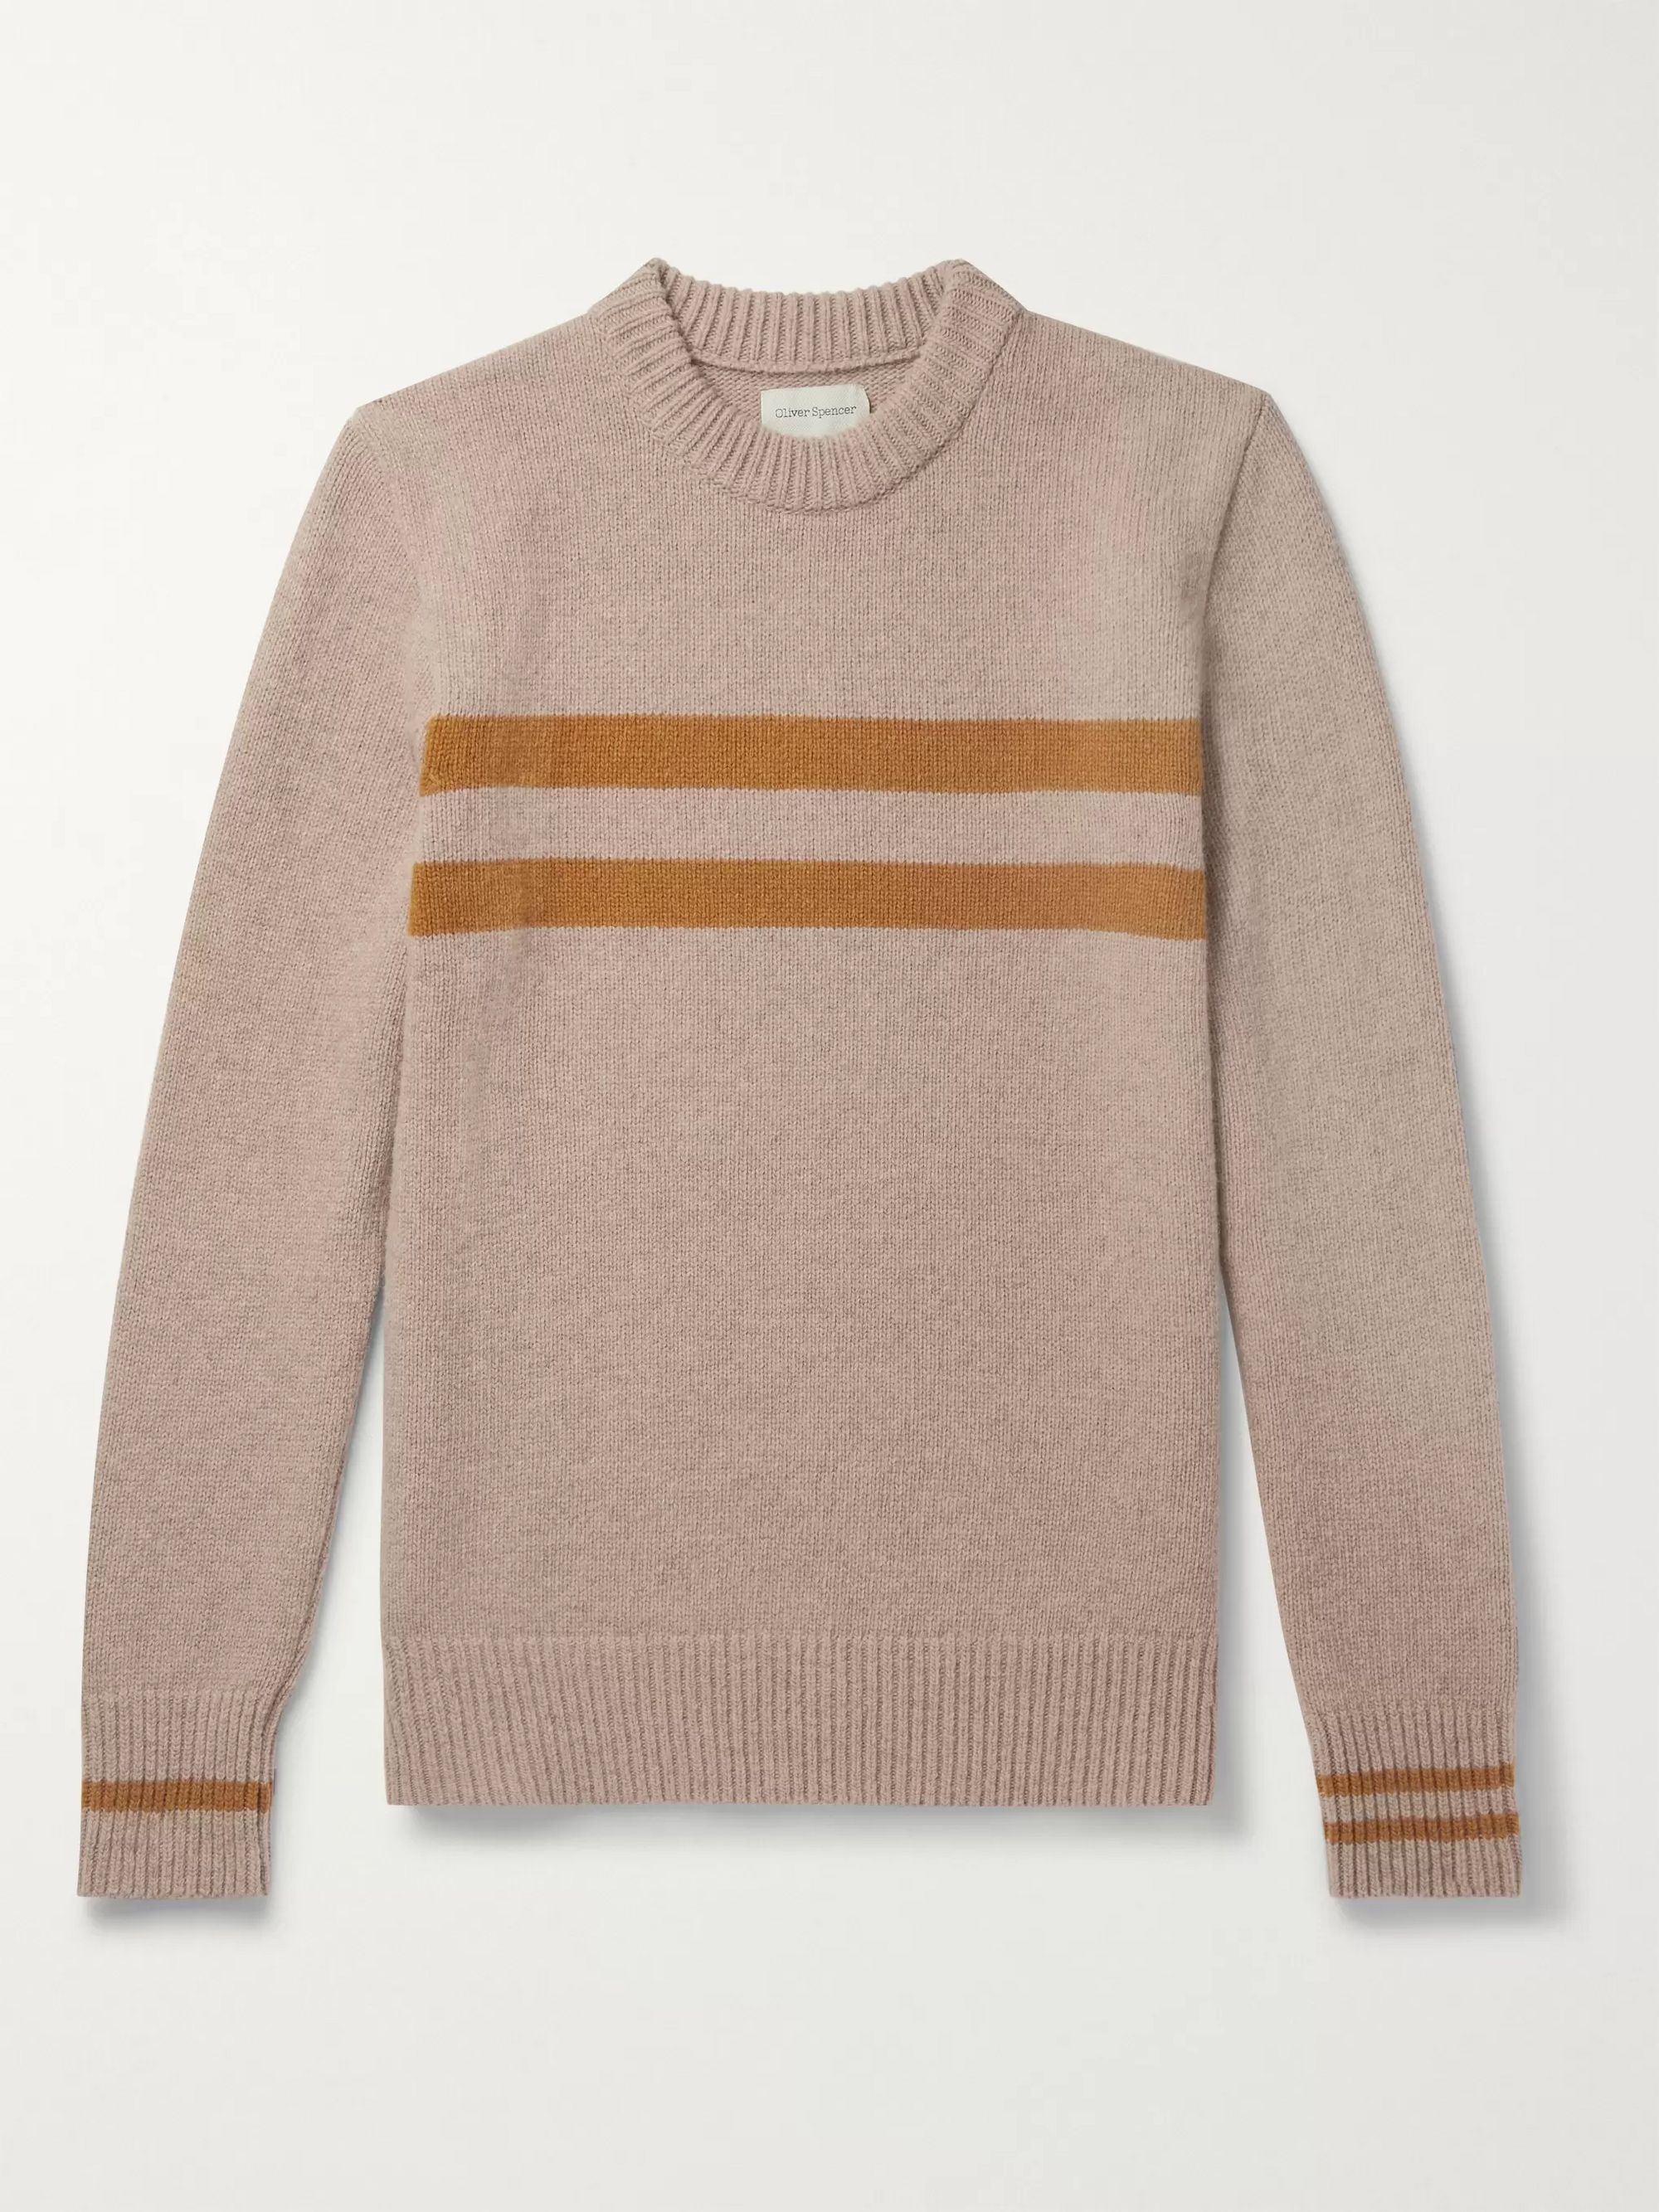 Striped Wool Sweater by Oliver Spencer